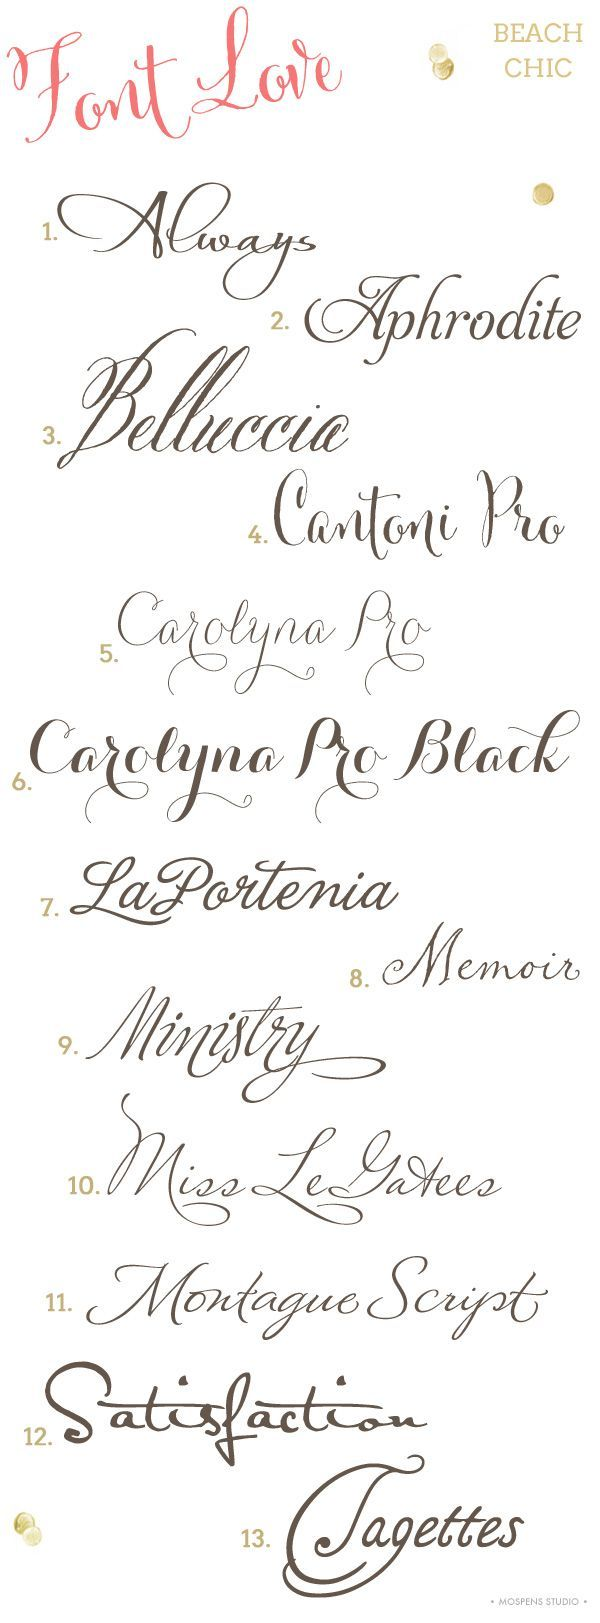 Font Love #6 / Beach Chic Wedding Invitation Fonts